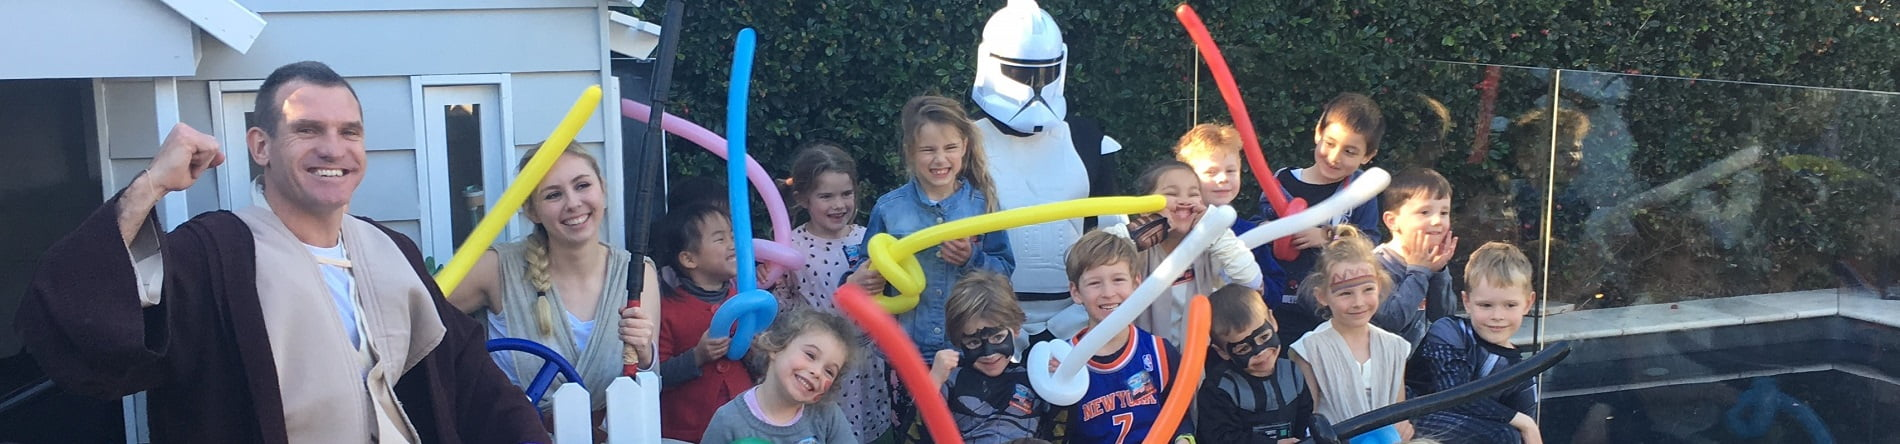 Image of Star Wars themed Jedi birthday party entertainers with smiling children holding balloon lightsabres